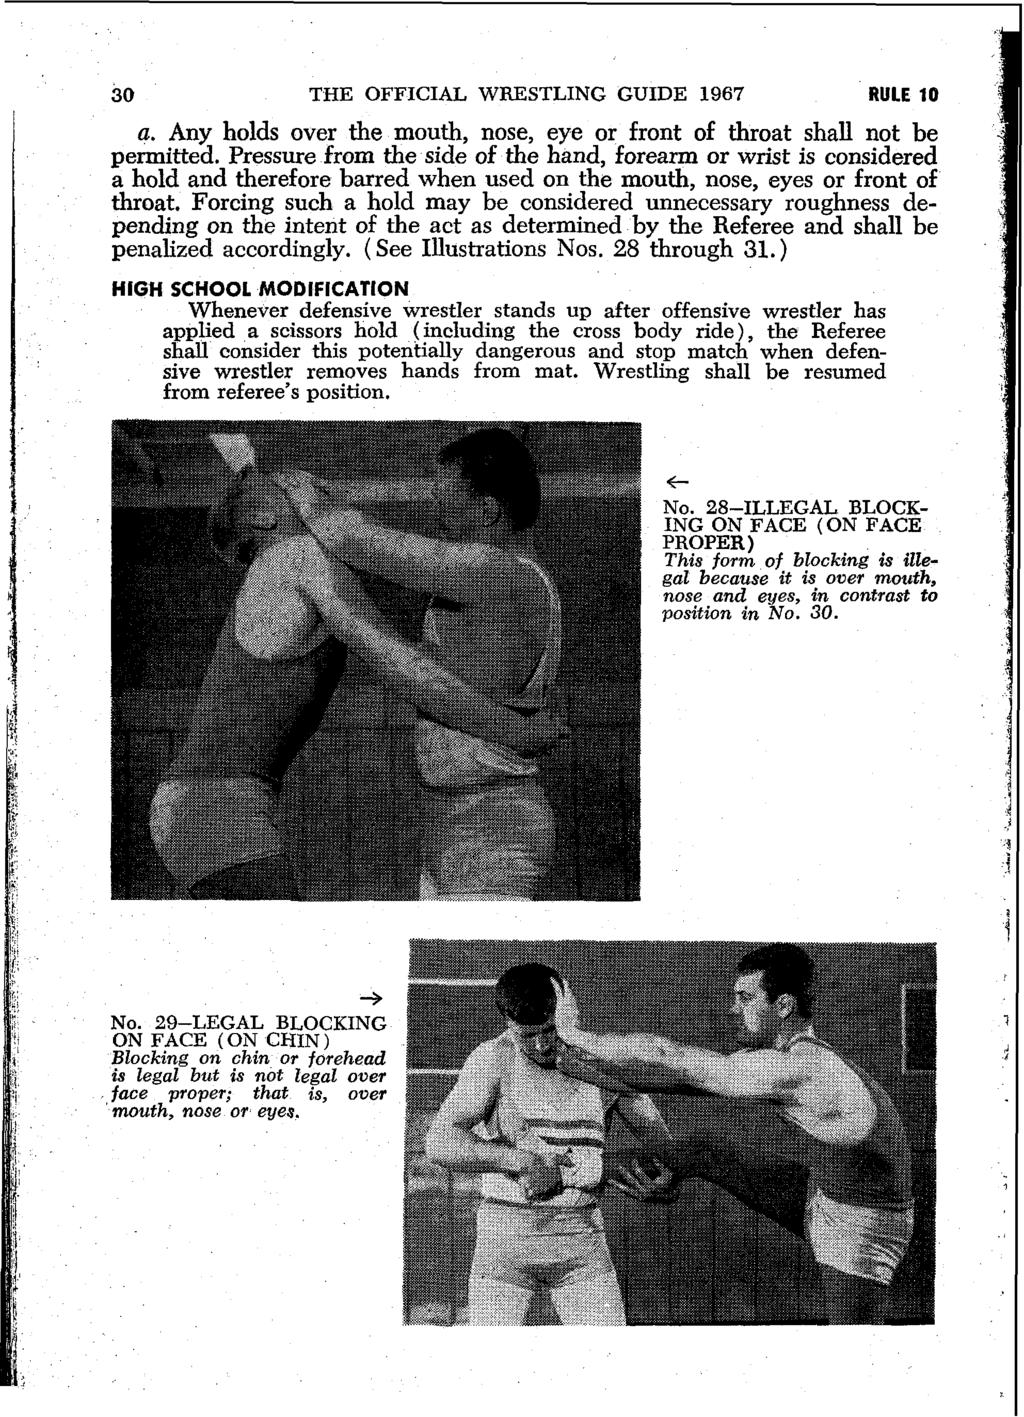 30 THE OFFICIAL WRESTLING GUIDE 1967 RULE 10 a. Any holds over the mouth, nose, eye or front of throat shall not be permitted.